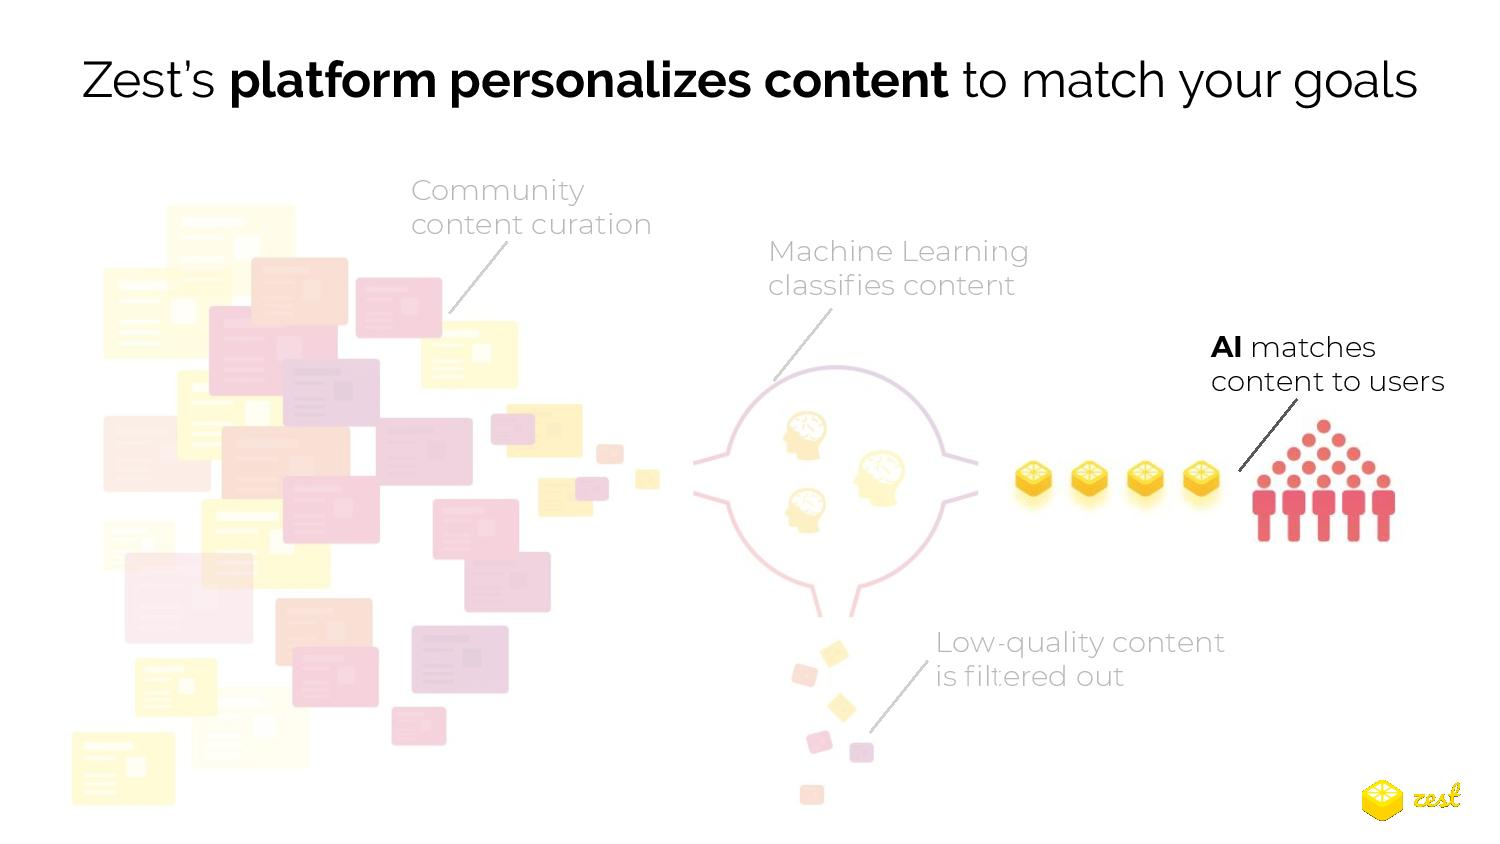 Zest's platform personalizes content to match your goals.  1. Community content curation 2. Machine learning classifies content (Low-quality content is filtered out) 3. AI matches content to users